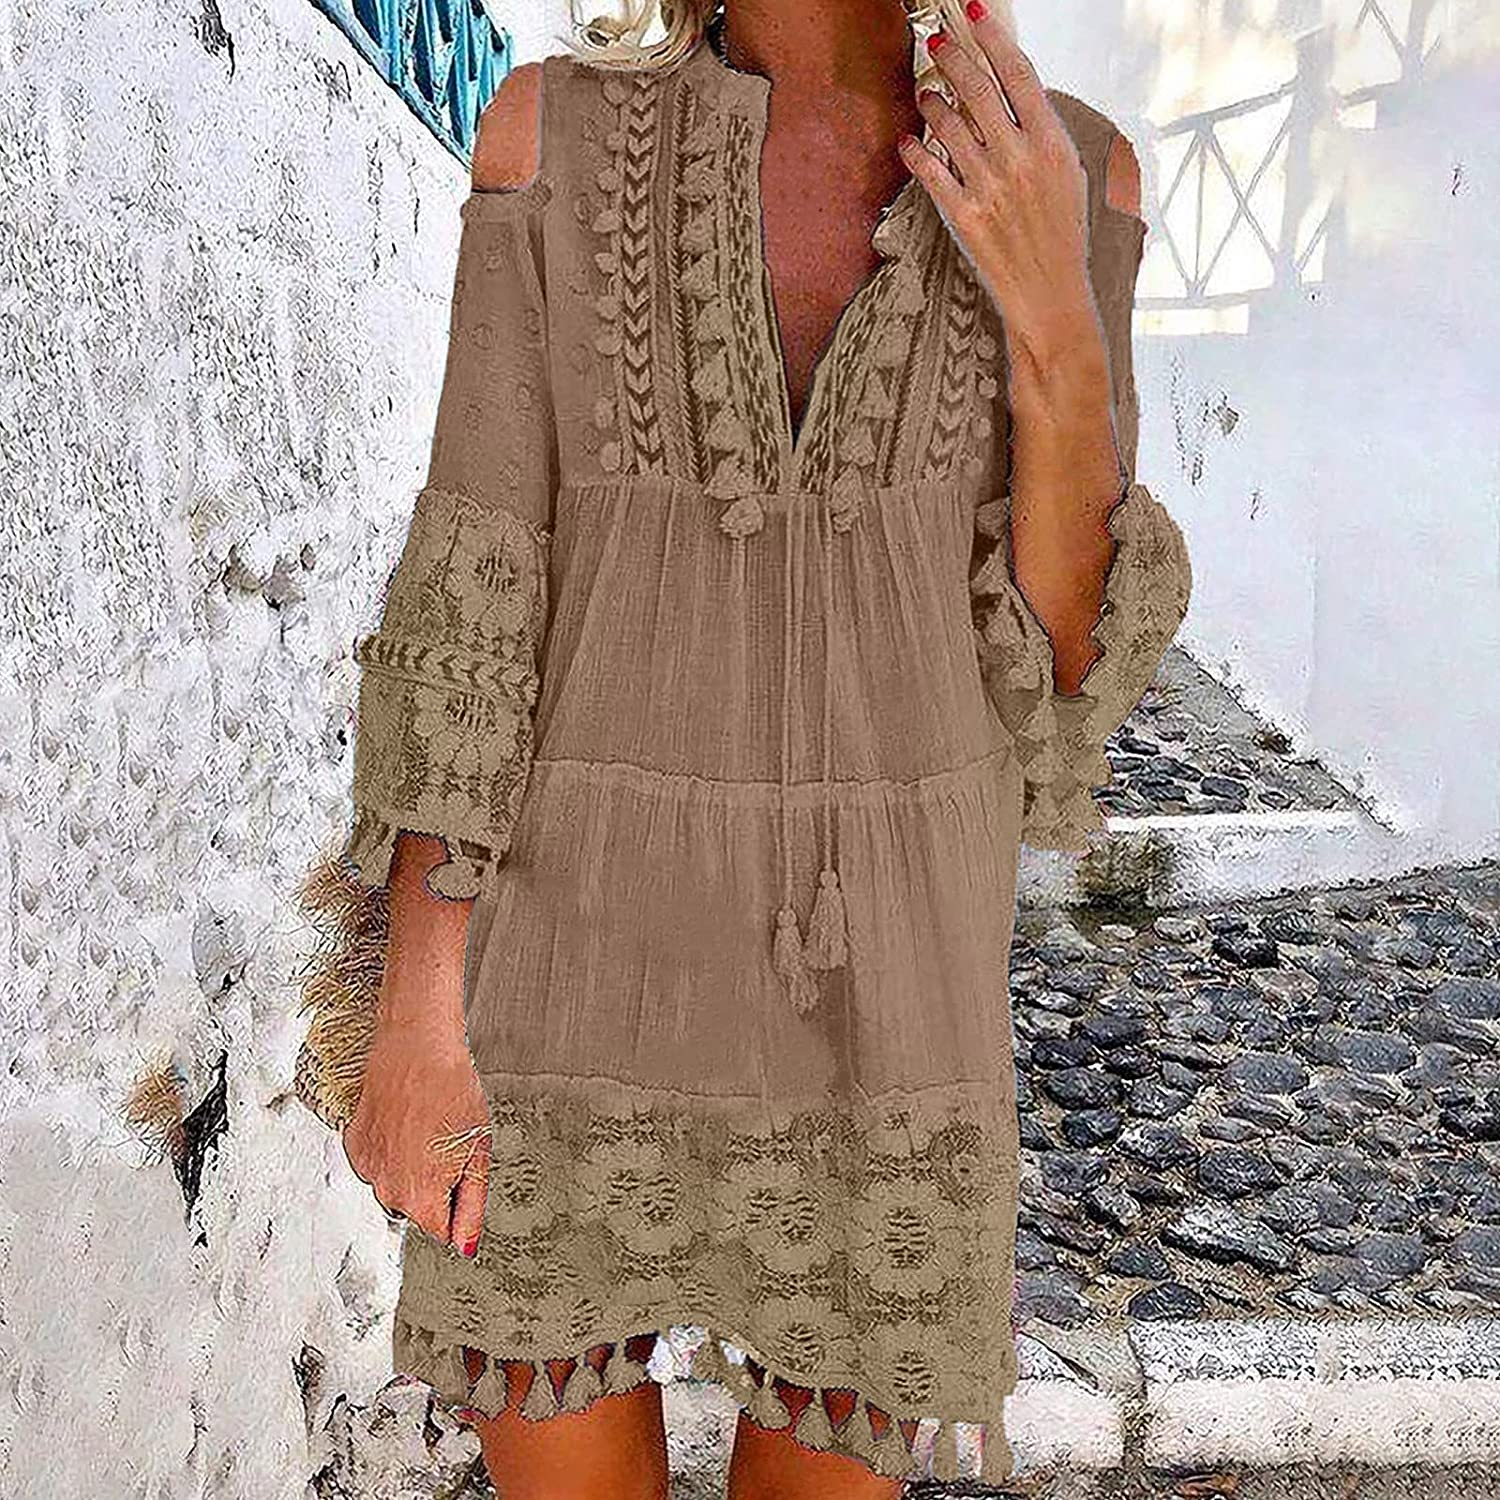 GOODTRADE8 Summer Dresses Maxi Dress Women Loose Casual Solid Lace Embroidery Patchword Dress V-Neck Dress